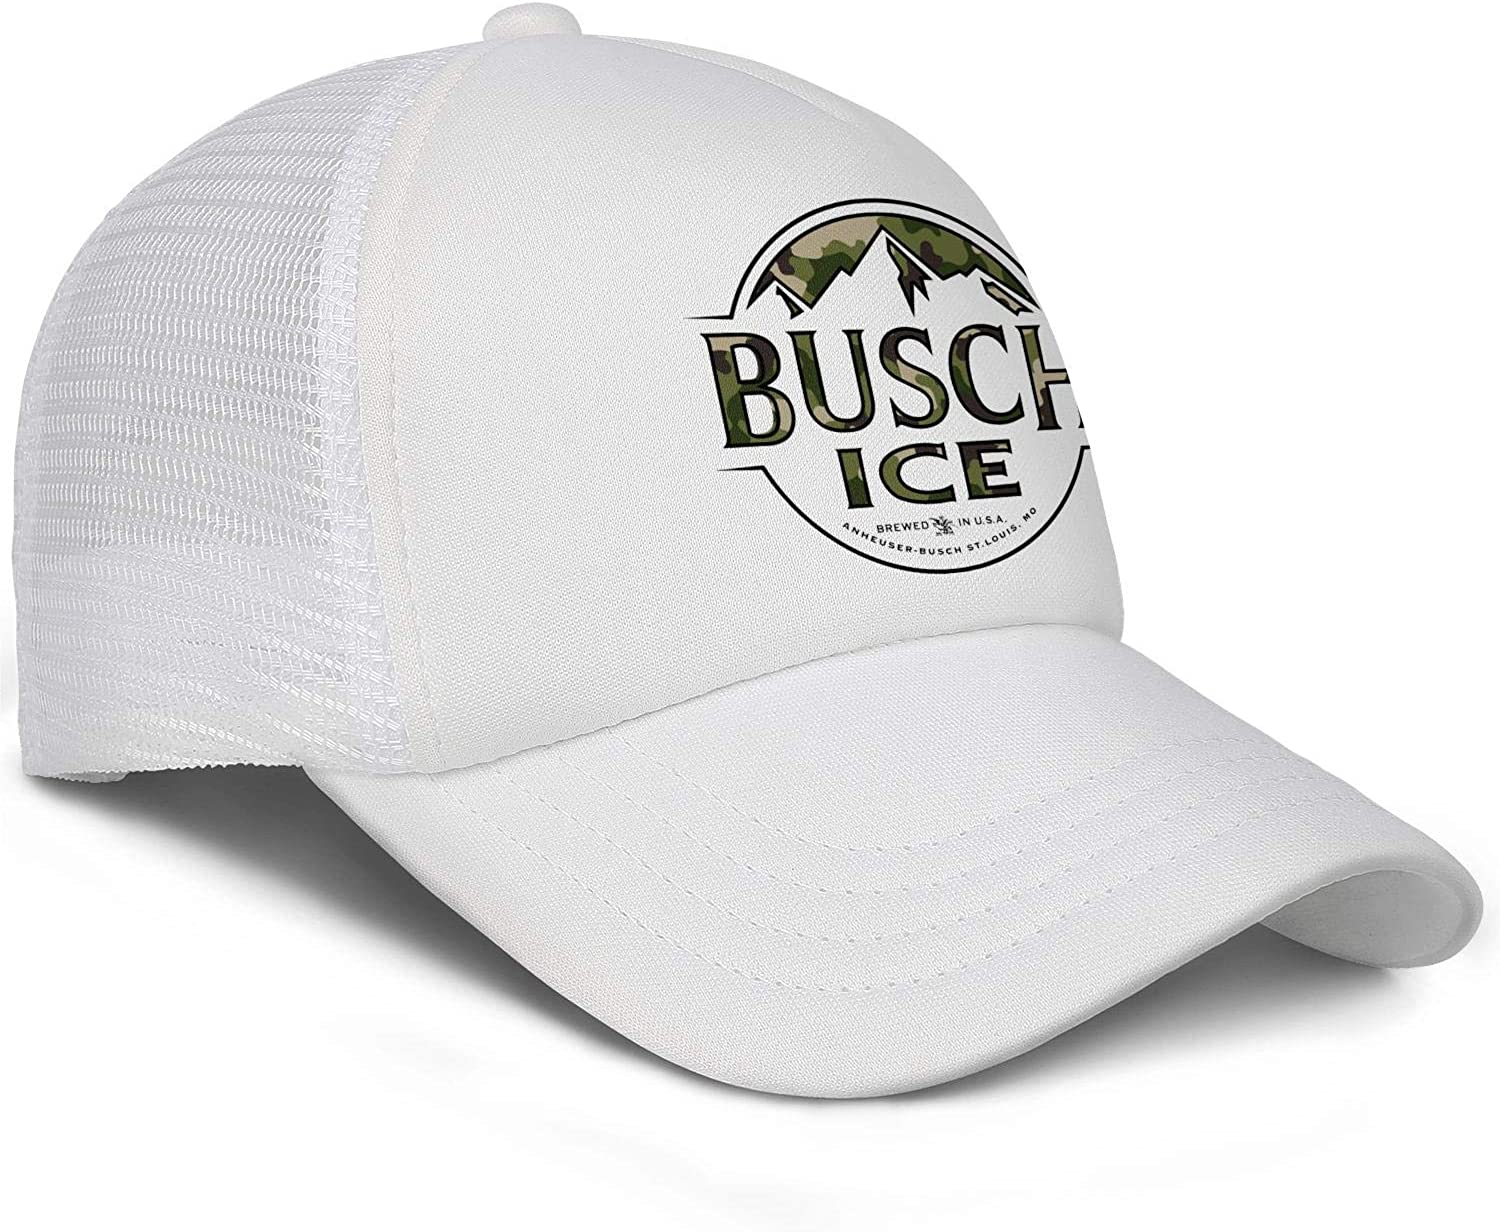 AOAOAOUV Men Unisex Adjustable Busch-Light-Beer-Black-Camouflage-Army-Side-Baseball Caps Youth Flat Hat